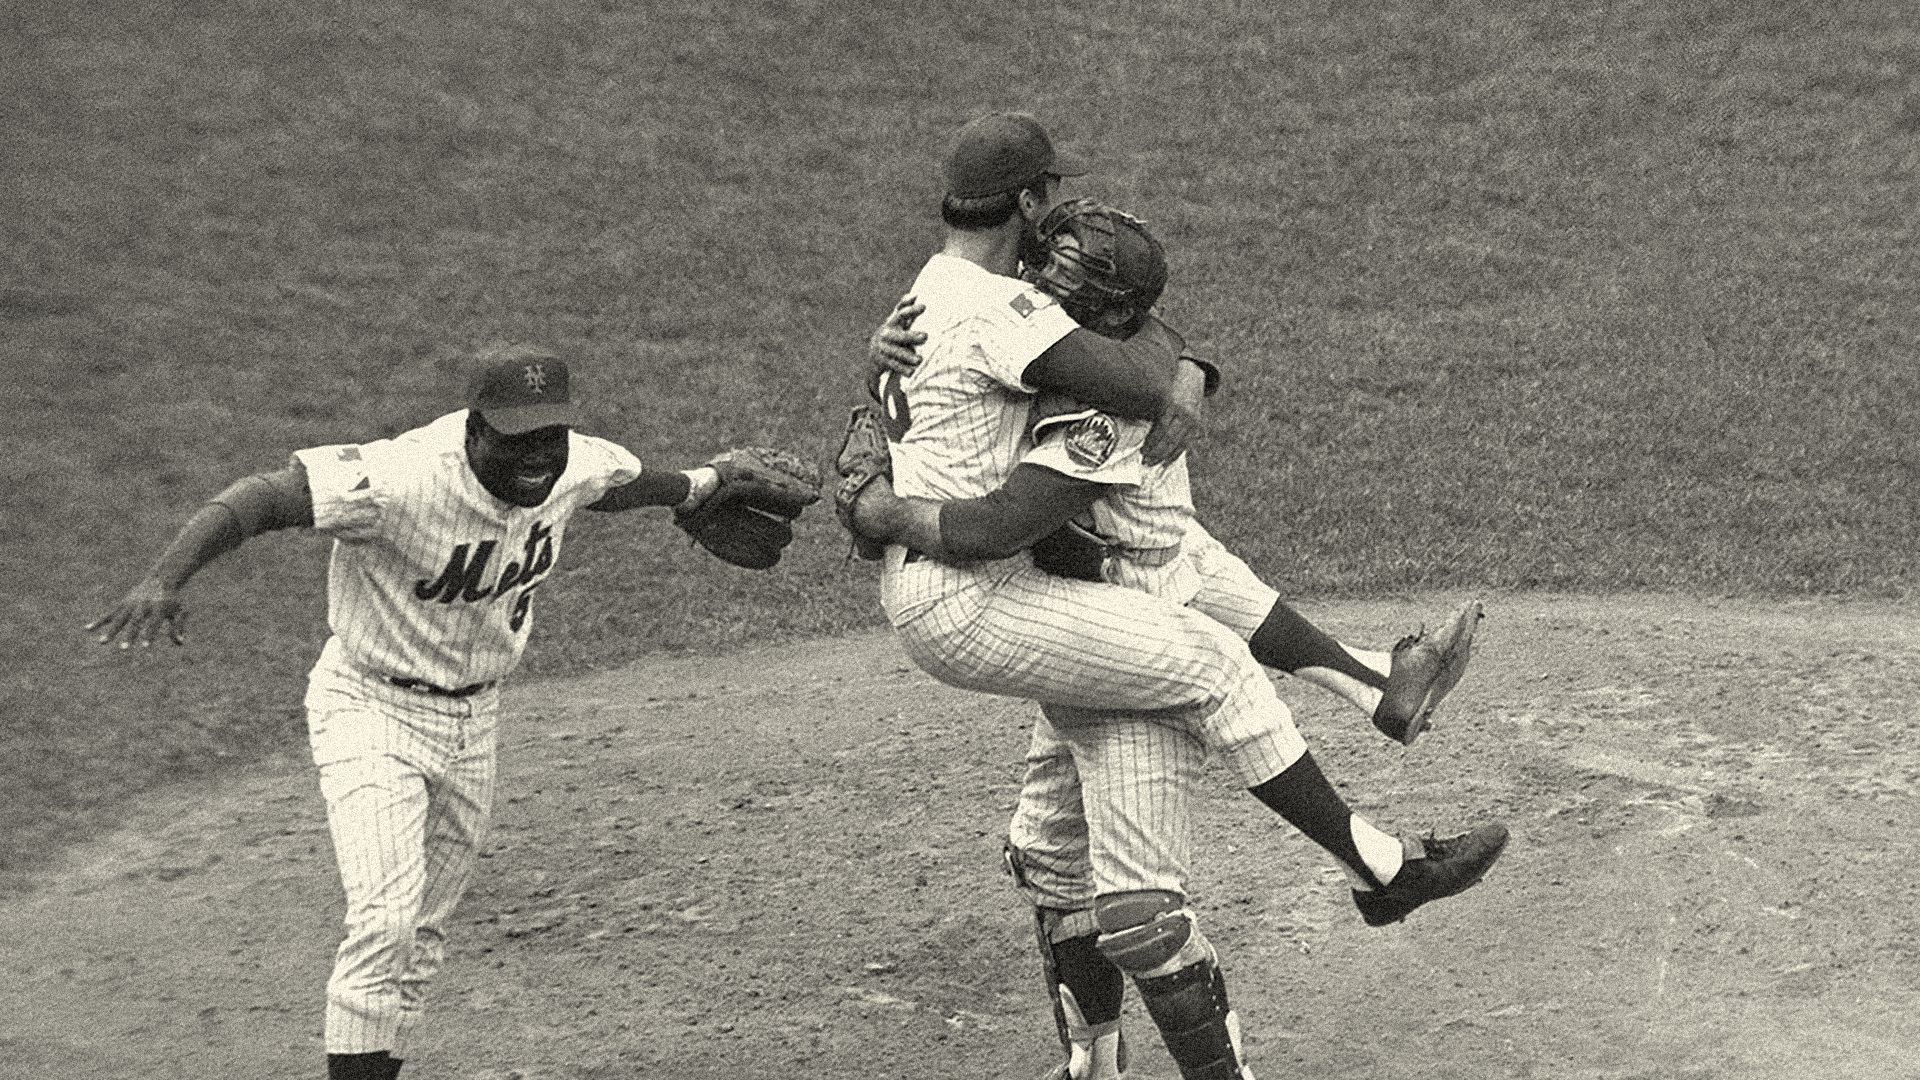 New York Mets players celebrate after winning the 1969 World Series. Photo Courtesy of MLB.com